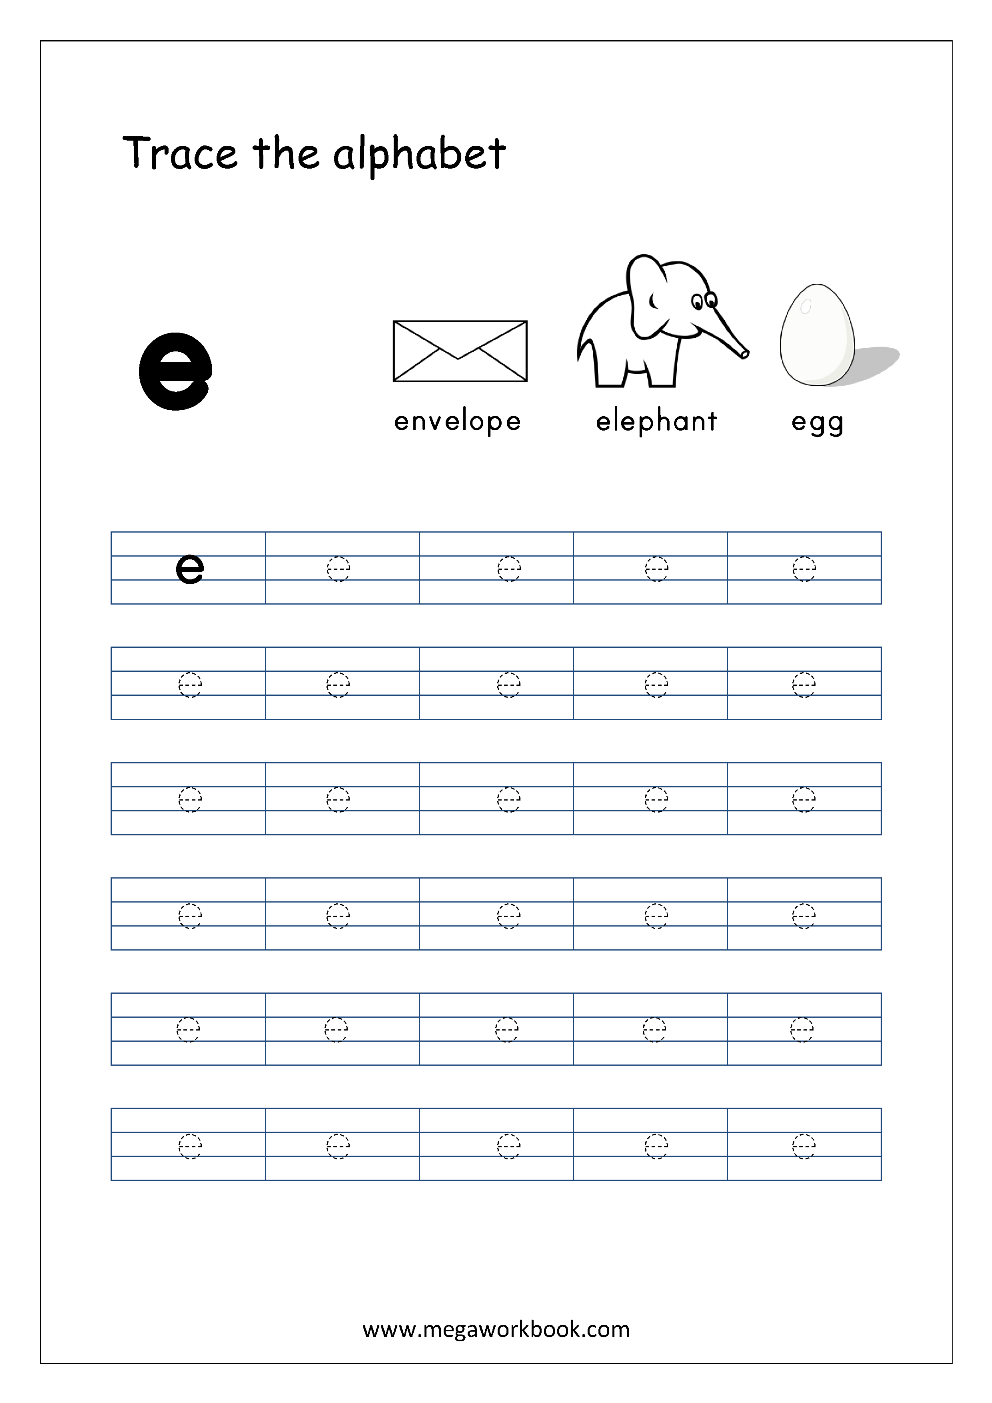 English Worksheet - Alphabet Tracing - Small Letter E with regard to Tracing English Letters